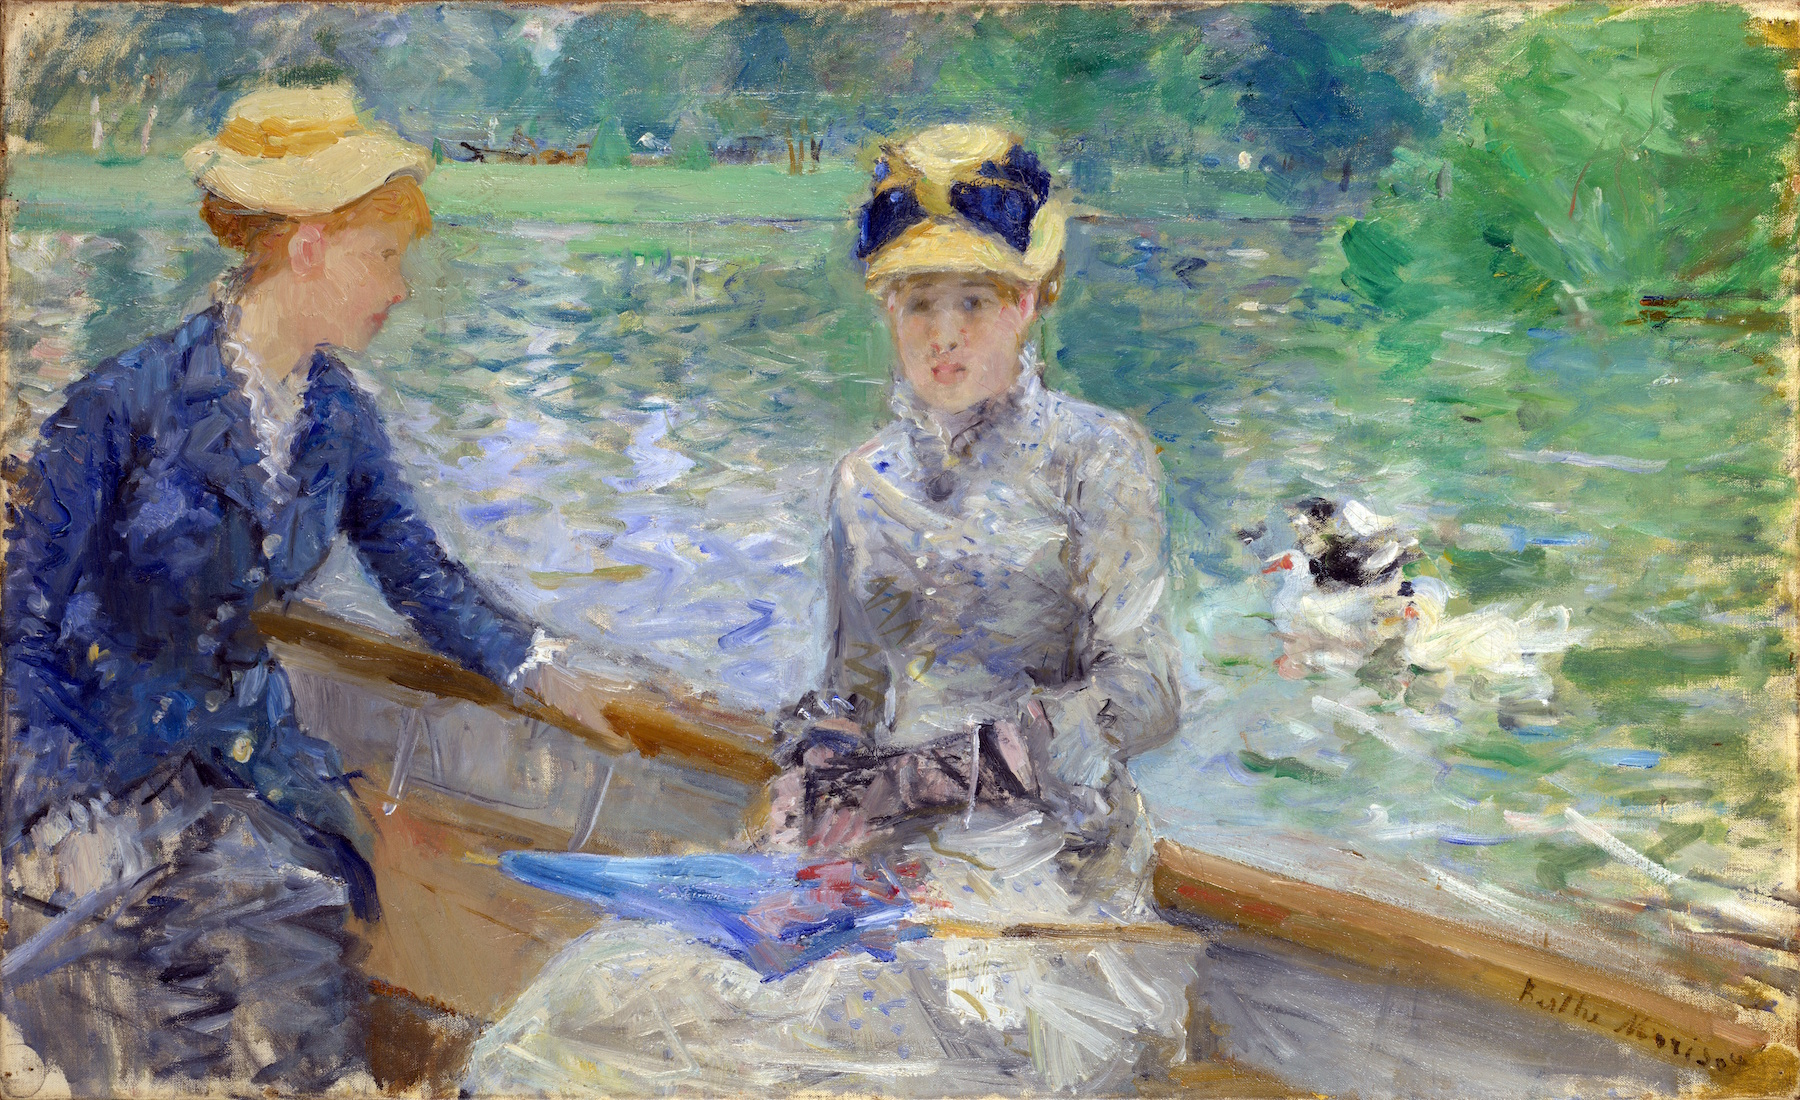 Berthe Morisot's Impressionist Scene of Summer Tranquility Was Unusual for Its Time. Here Are 3 Facts You Might Not Know About It